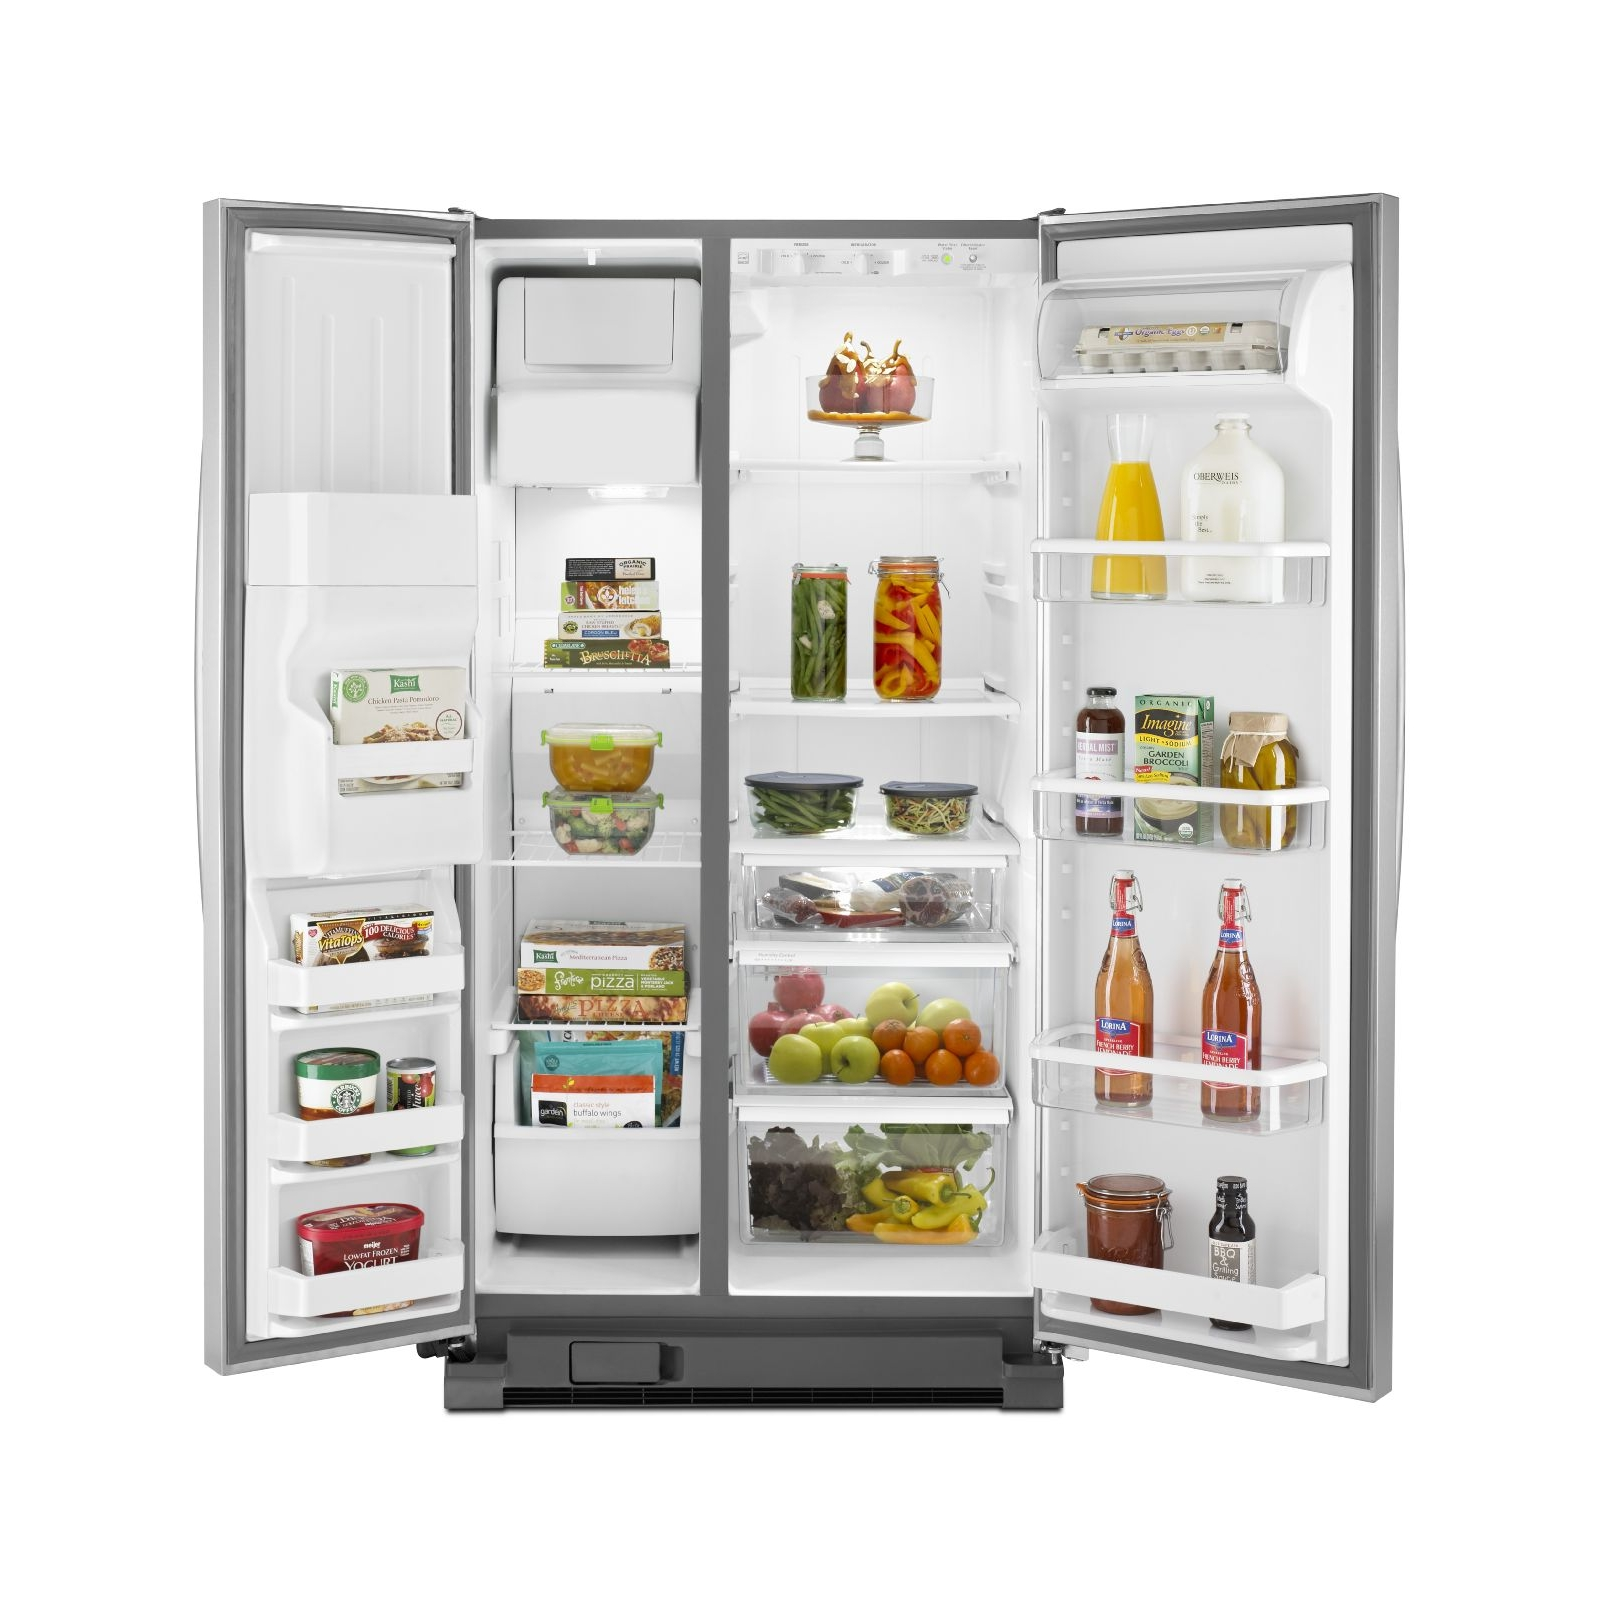 Whirlpool WRS325FDAM 24.9 cu. ft. Side-by-Side Refrigerator w/ Accu-Chill- Stainless Steel